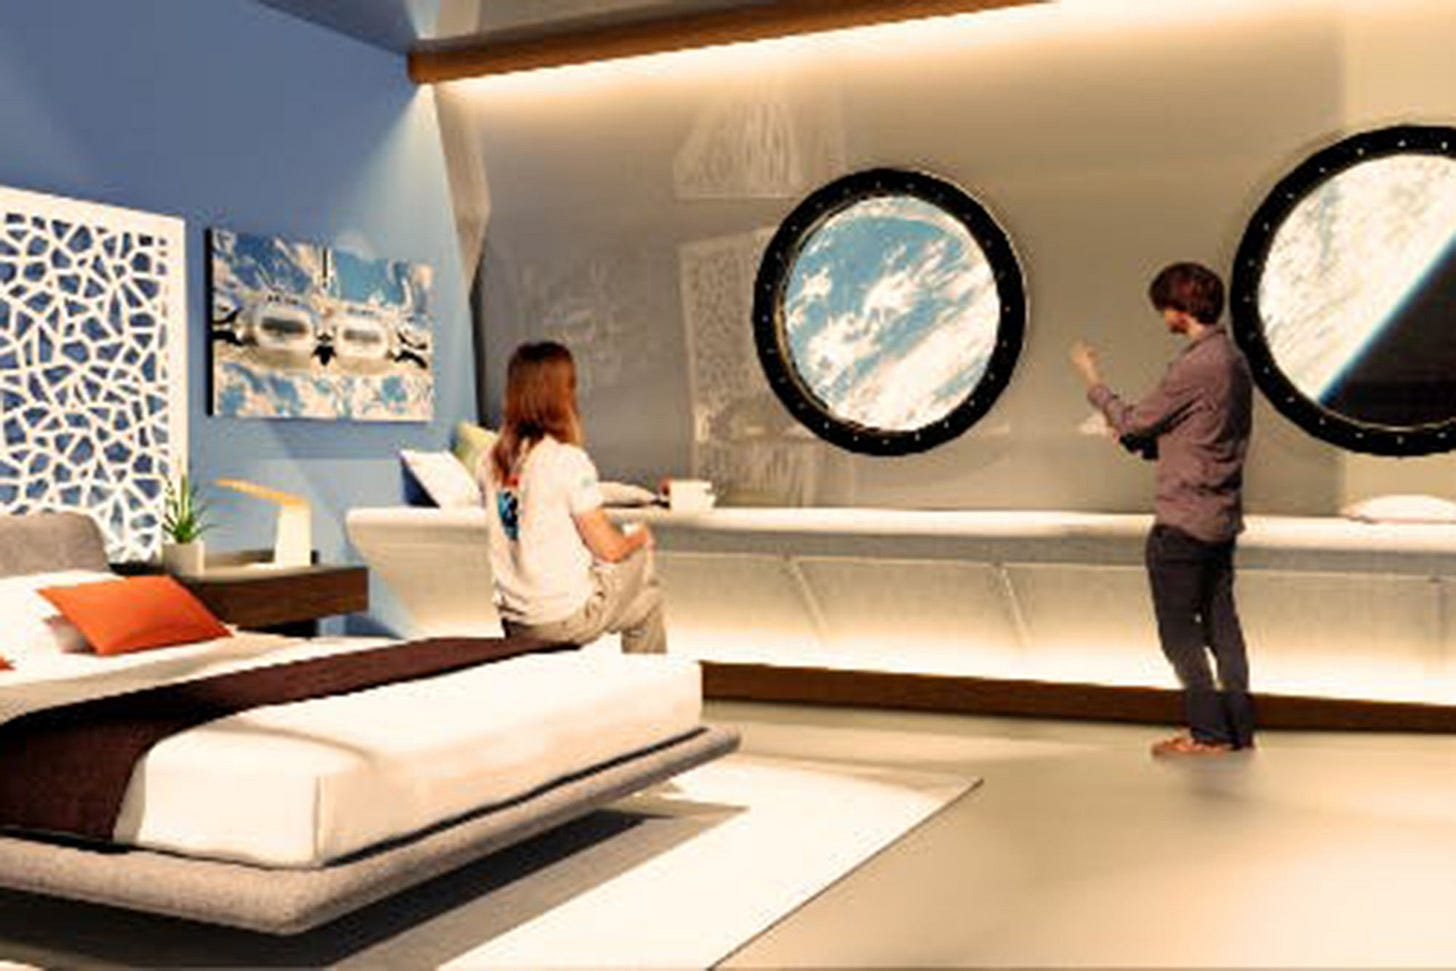 Picture of an imaginary space hotel room